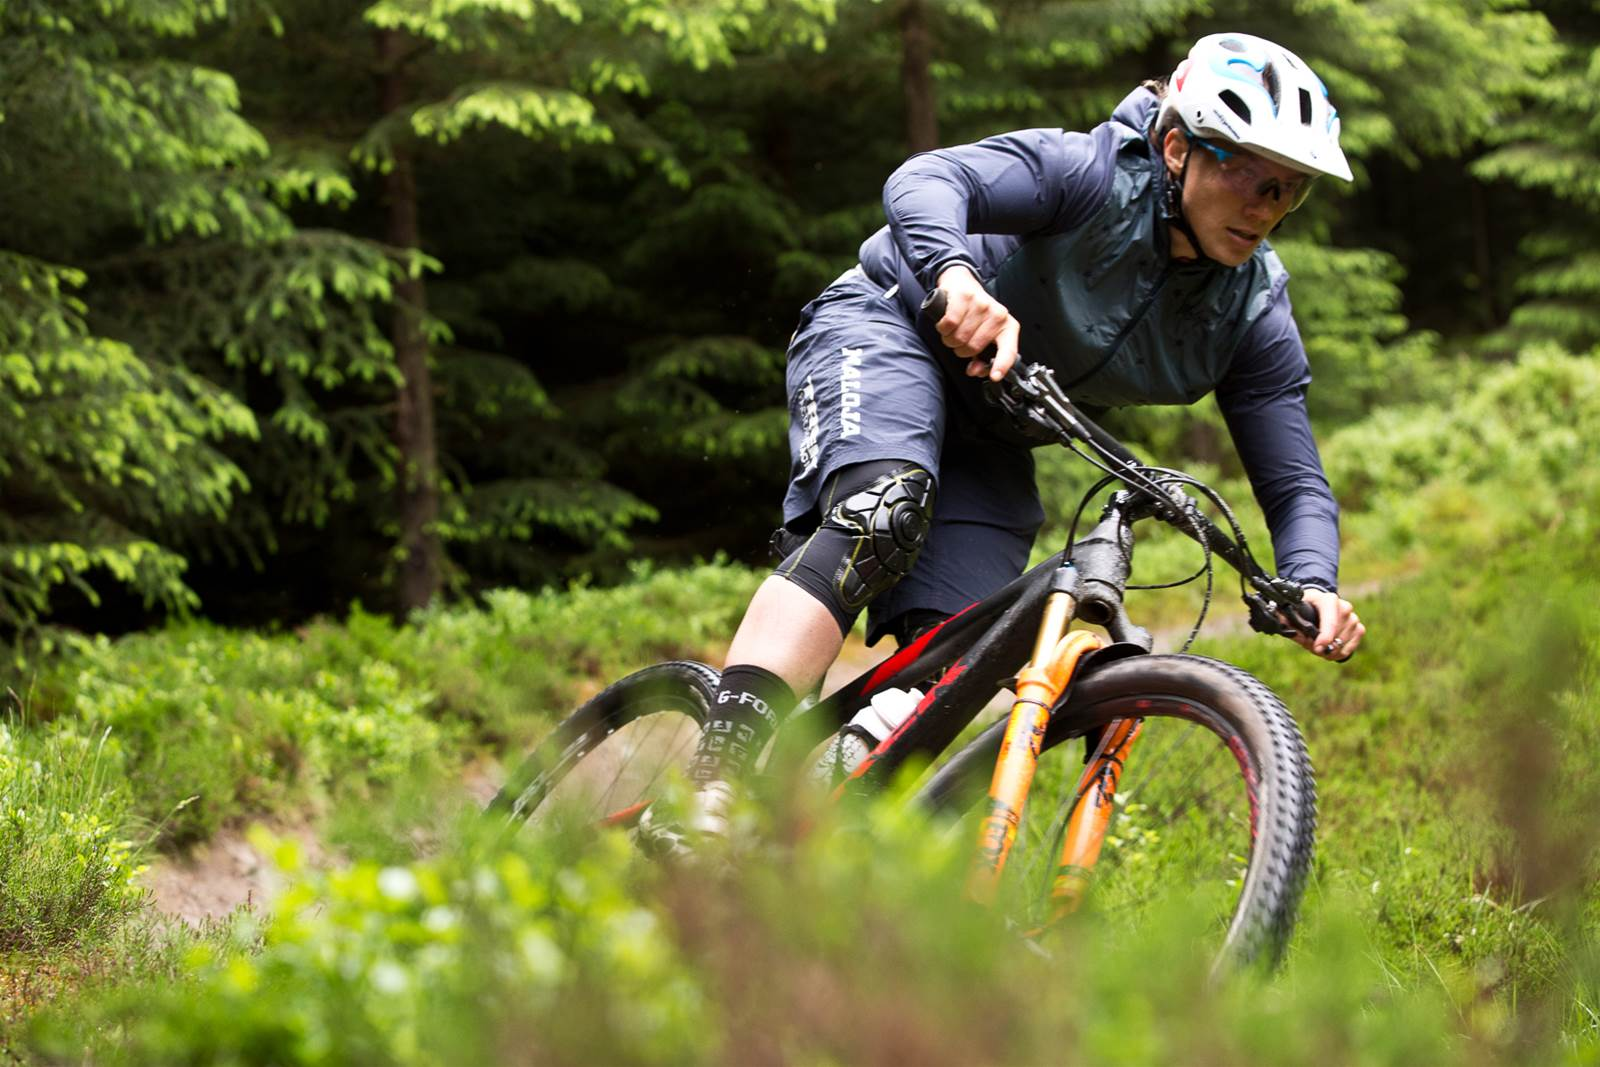 Tracey Moseley: Life on a bike